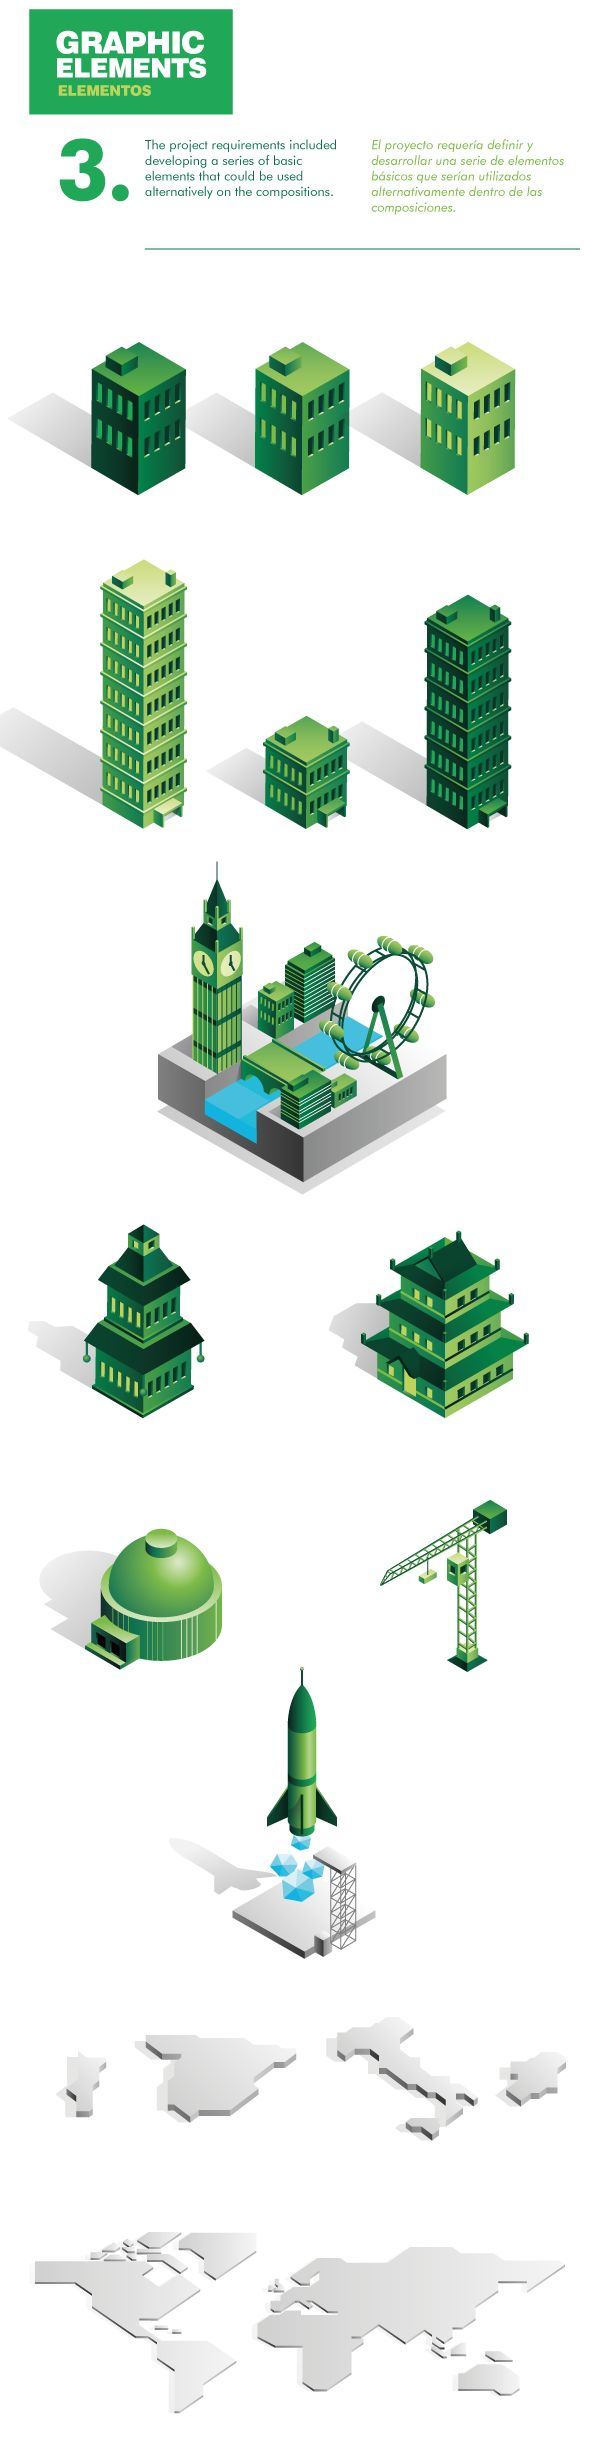 CBRE Animated Infographics by Mauco Sosa, via Behance